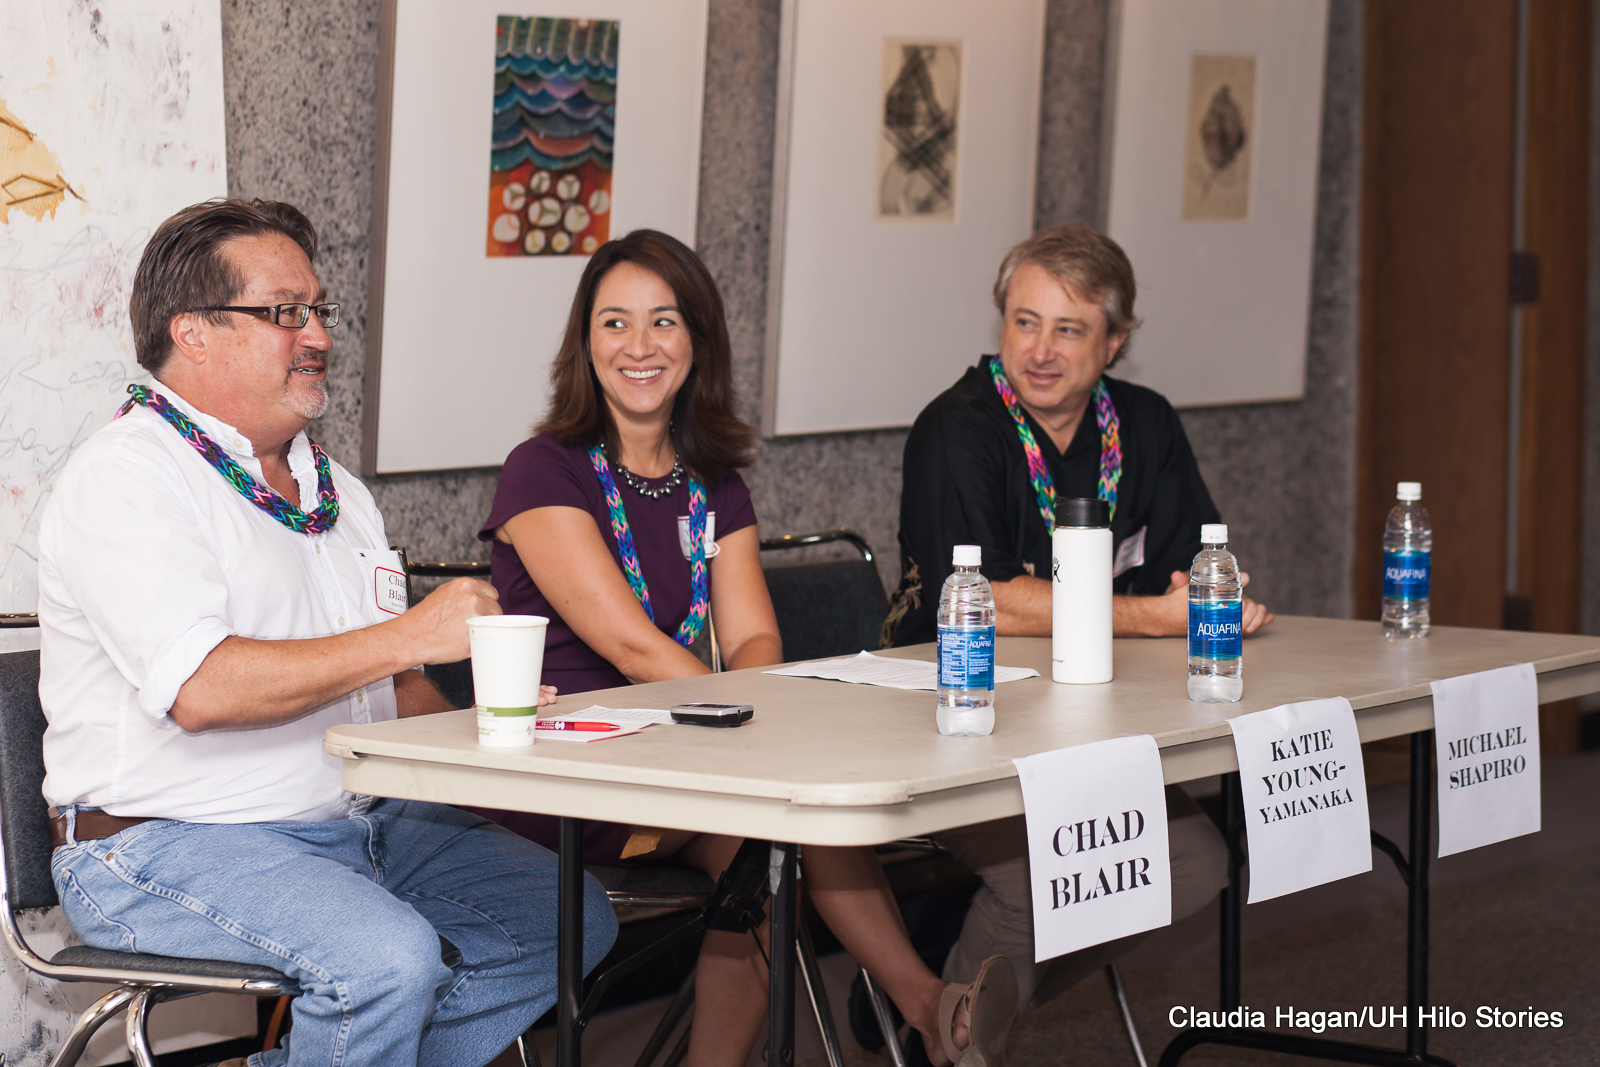 UH Hilo students gain insight at journalism symposium